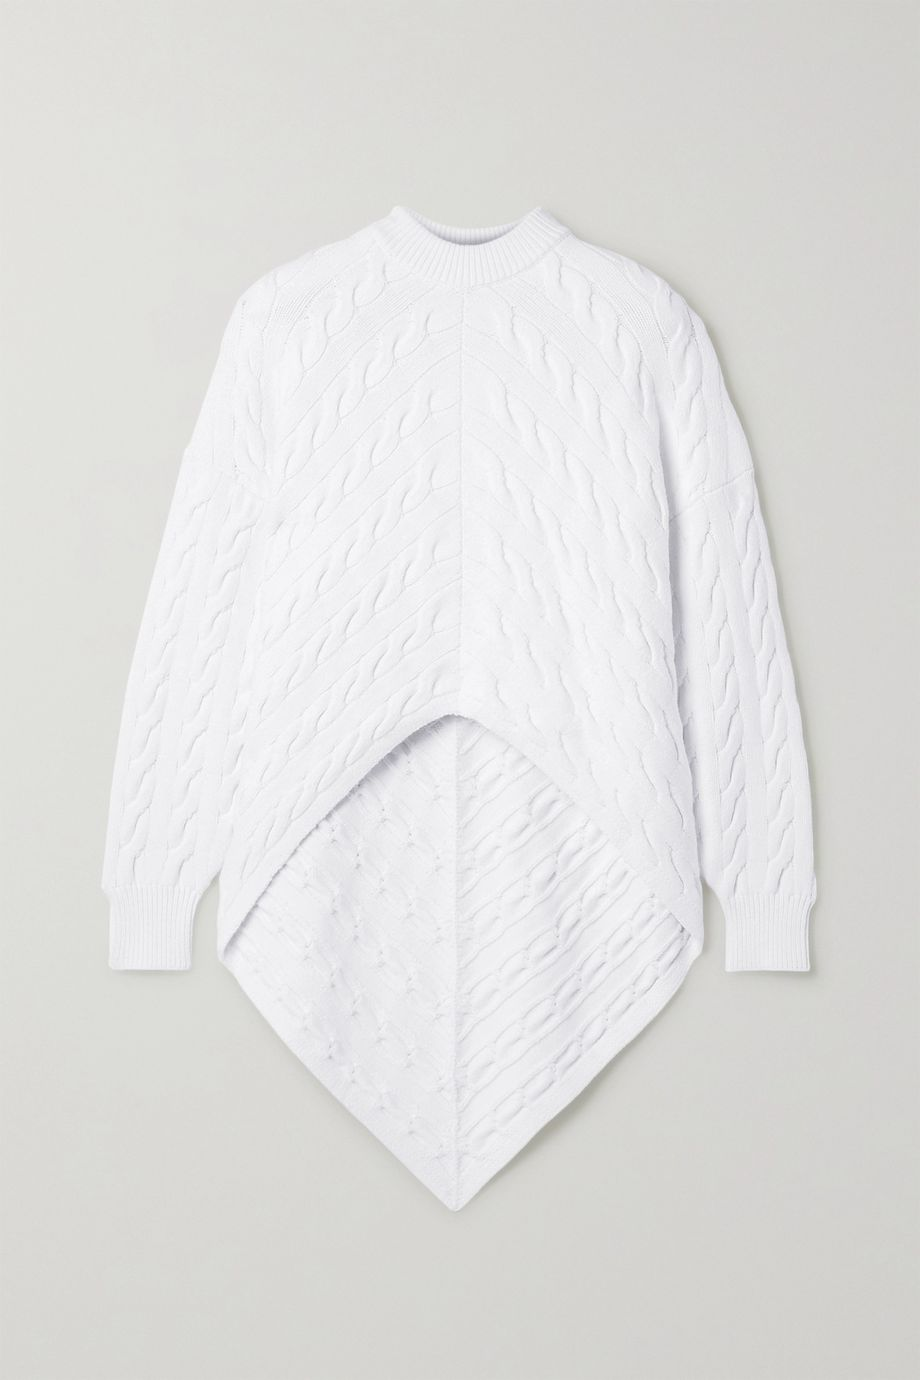 Alexander Wang Asymmetric cable-knit cotton-blend sweater